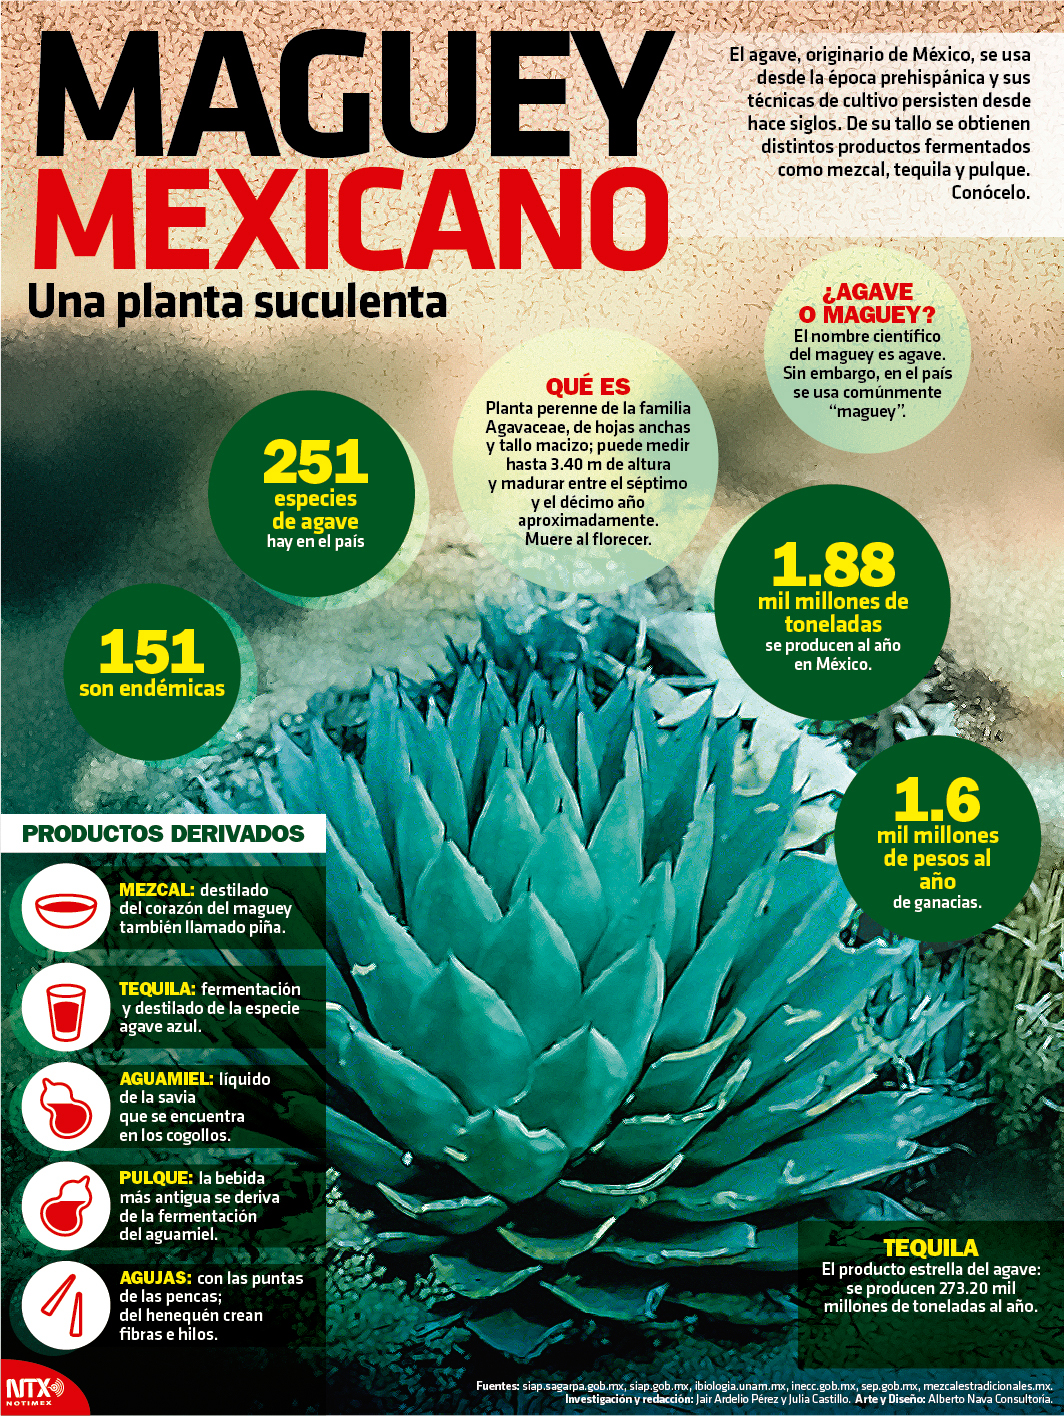 Maguey mexicano